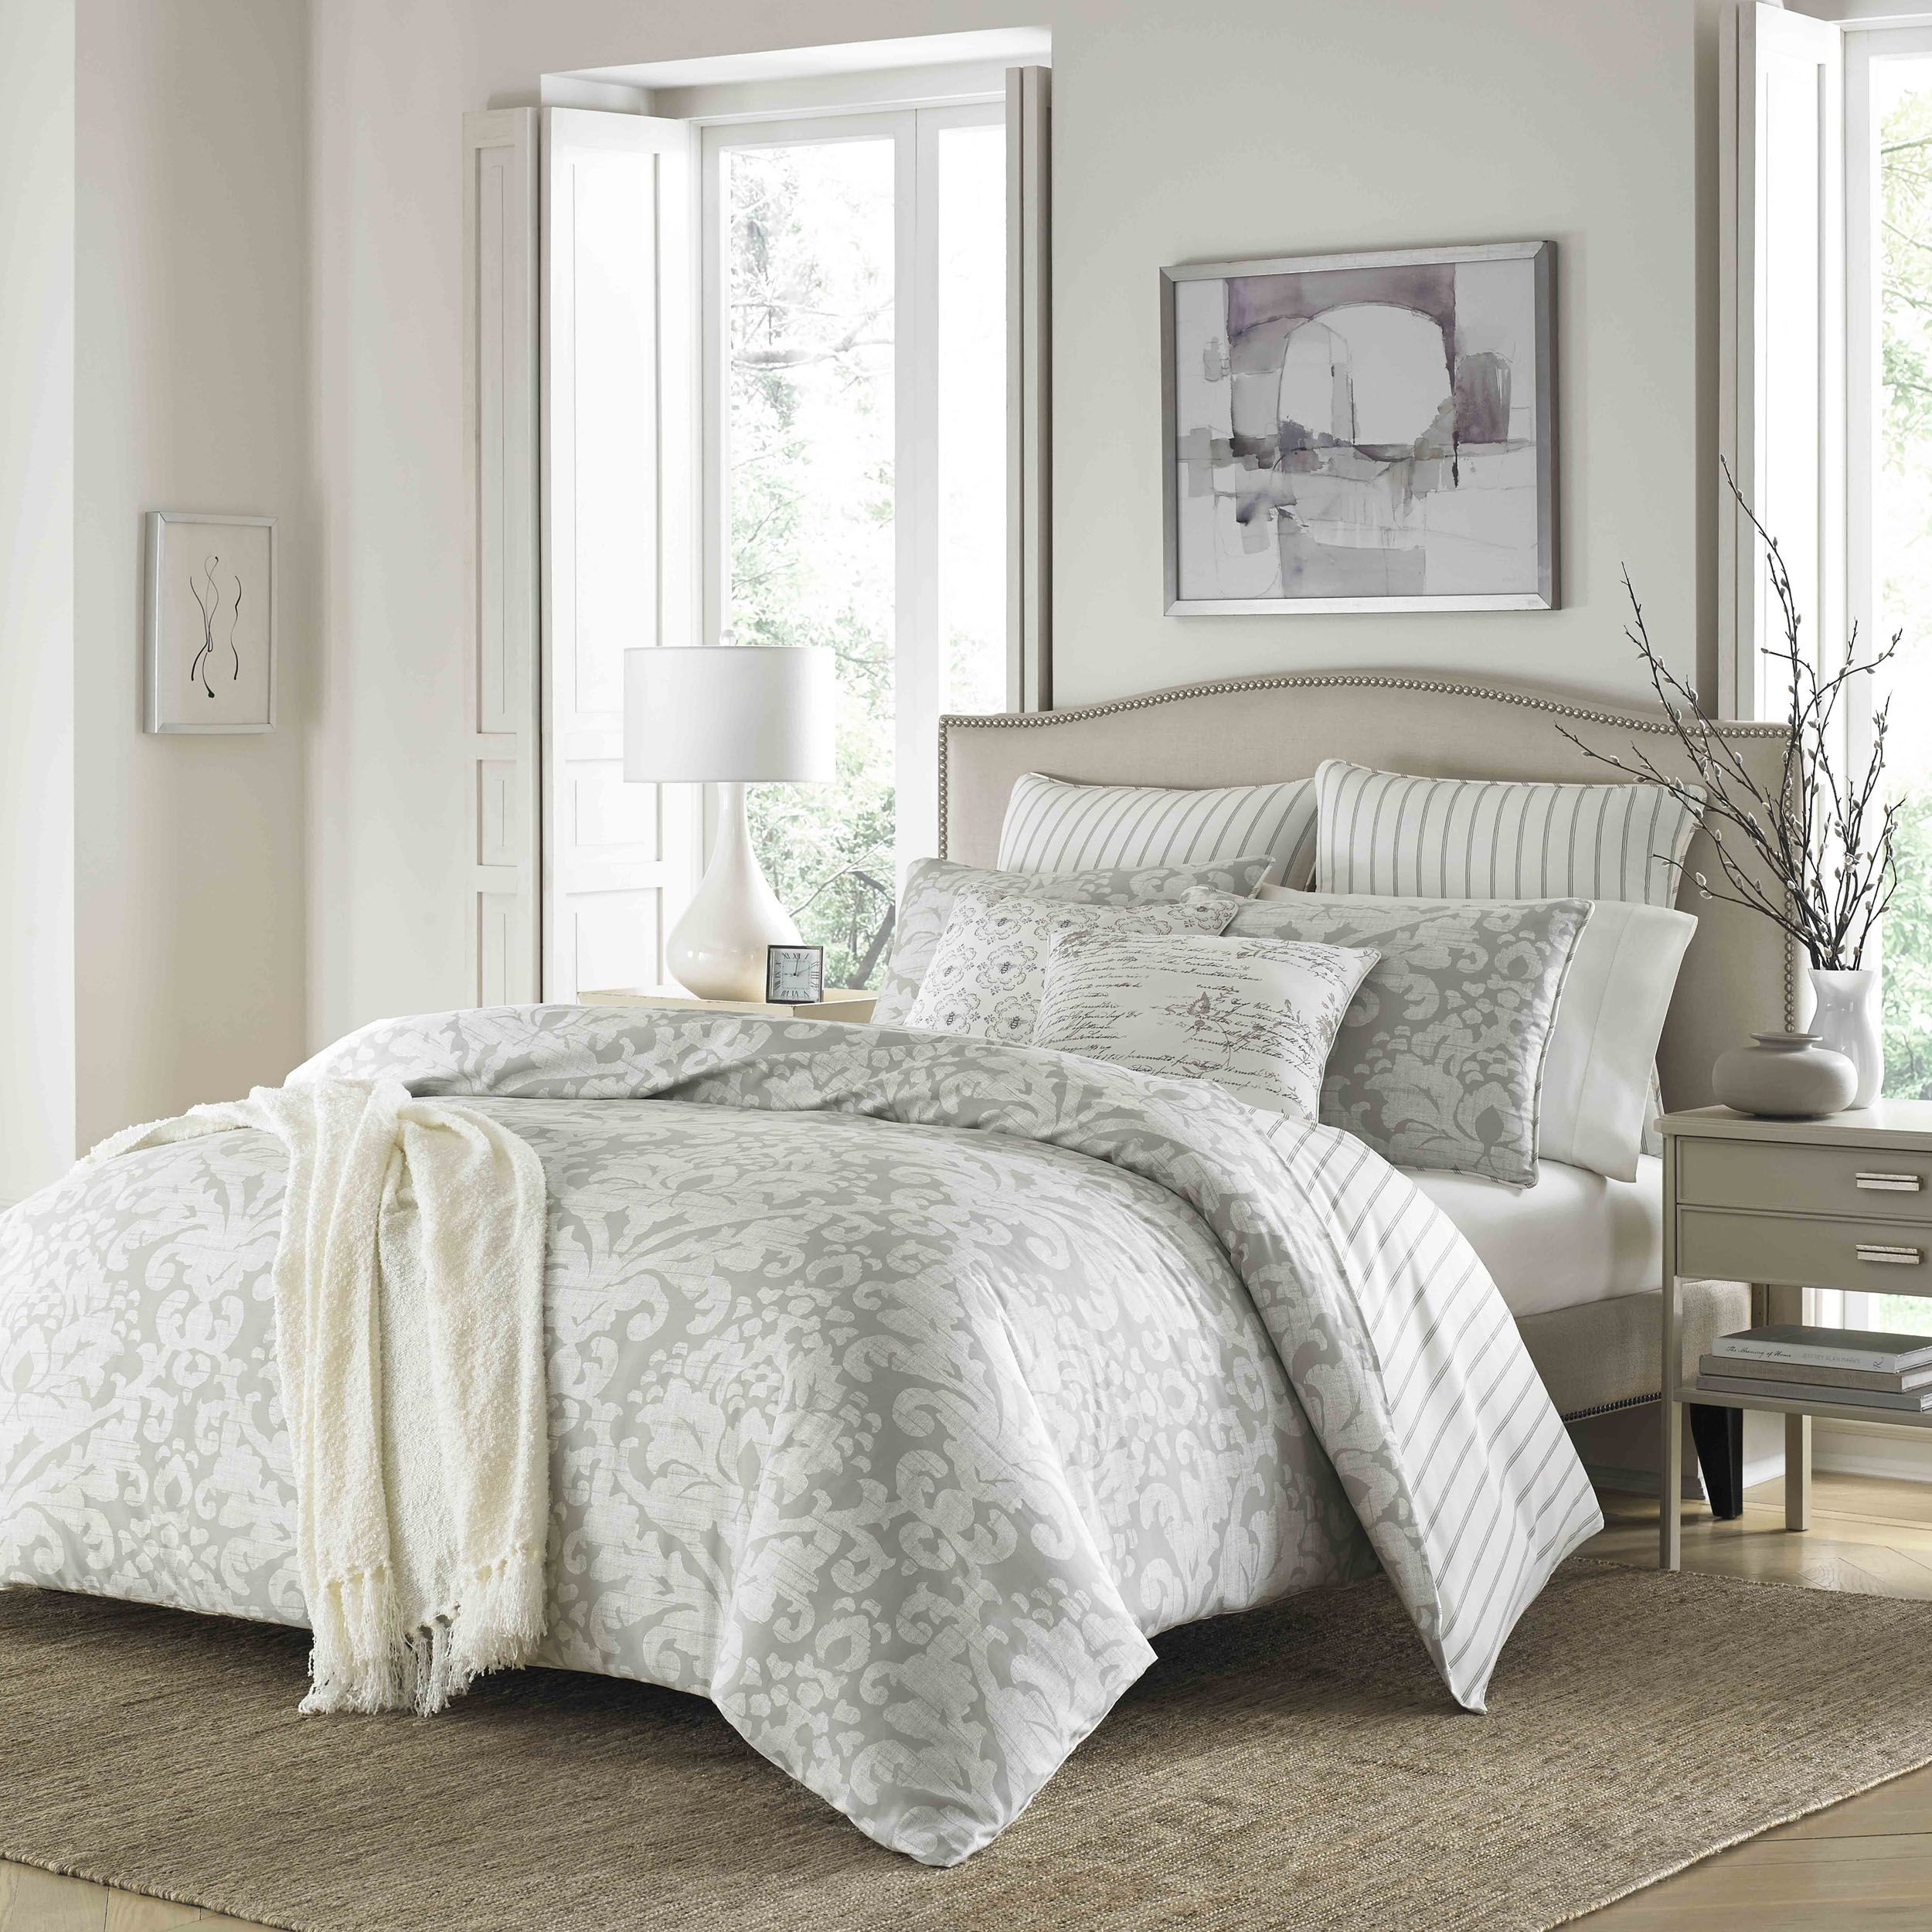 bedding is pin and stone timeless cottage classic